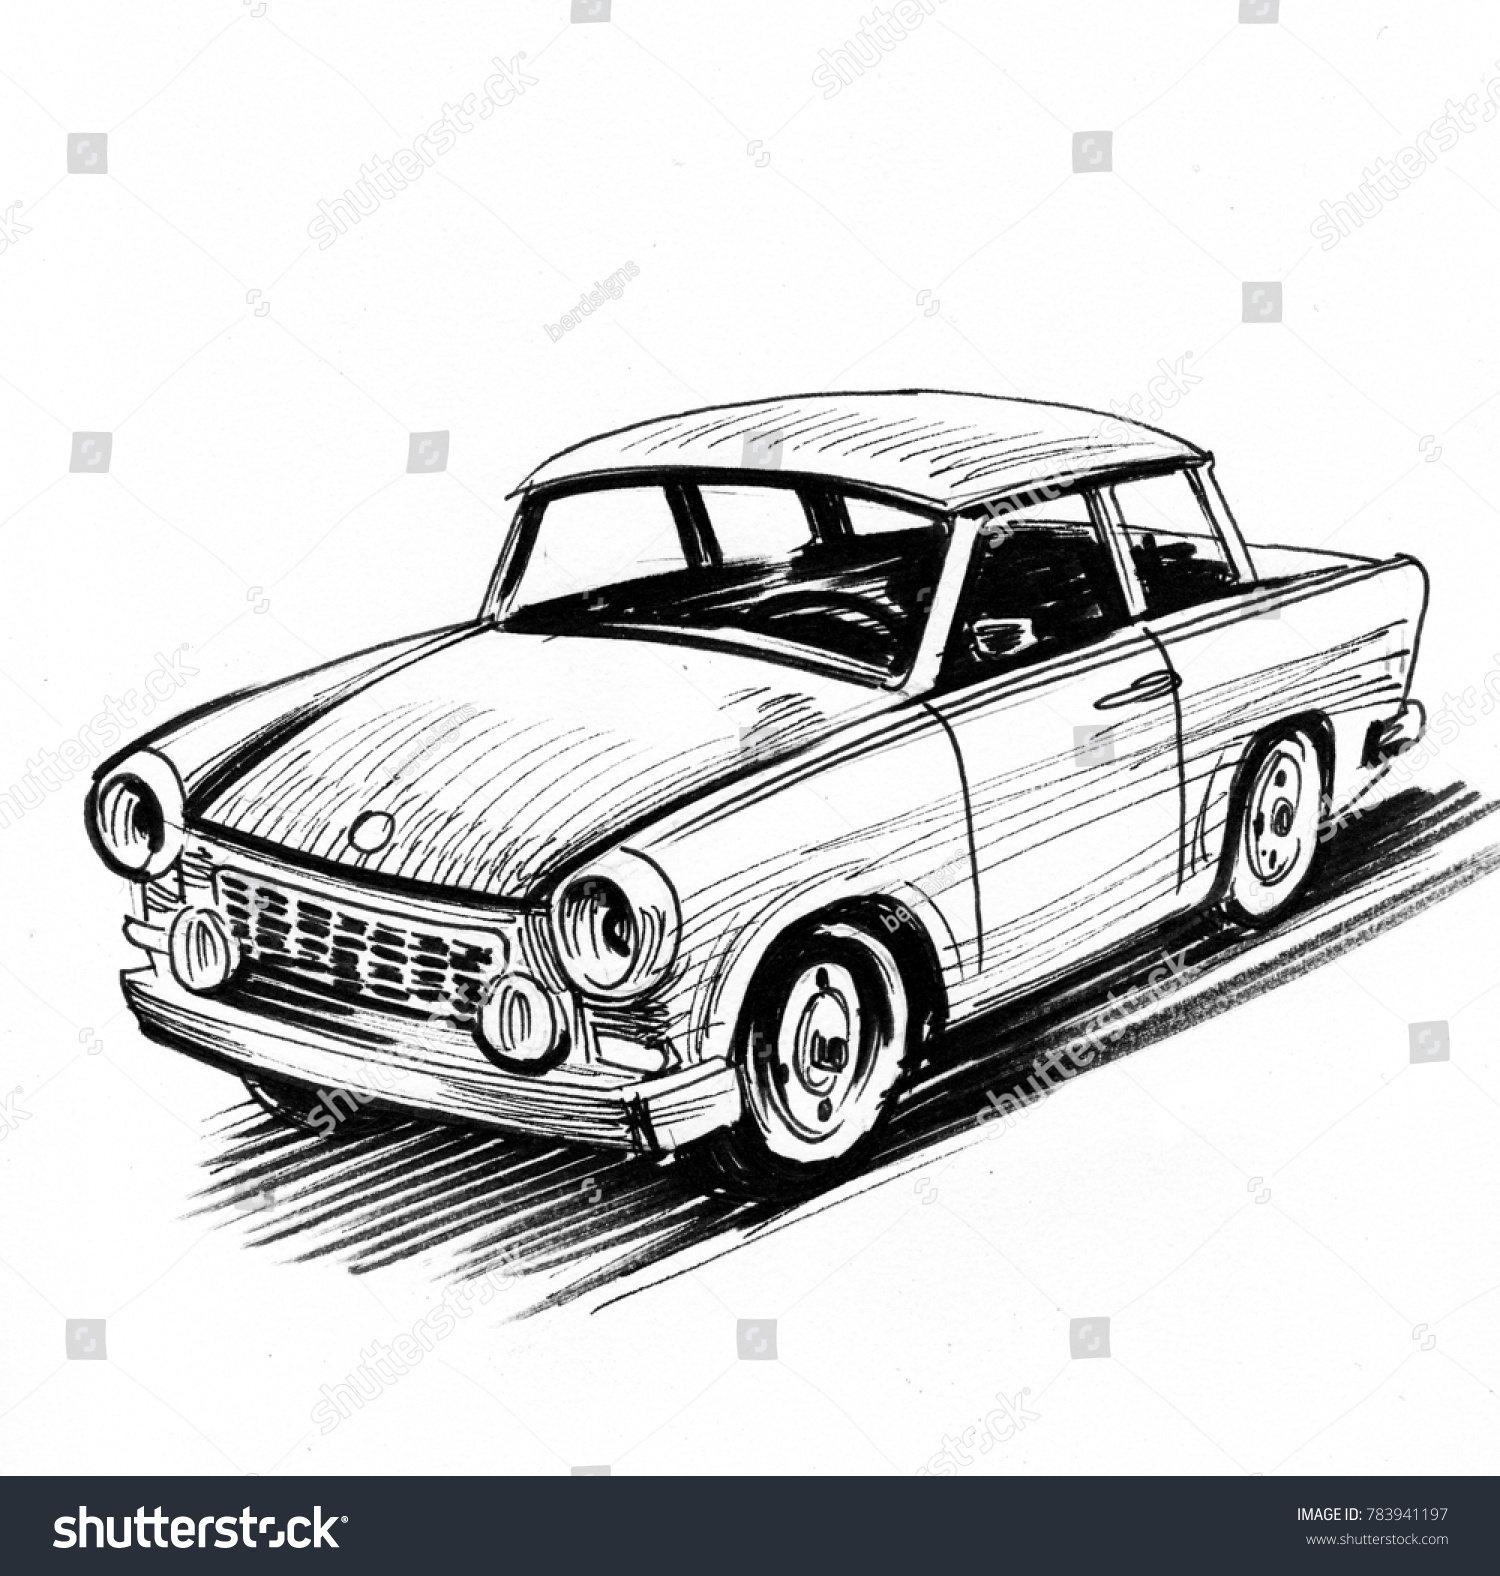 Trabant Clipart Royalty Free Stock Illustration Of Retro East German Car Black